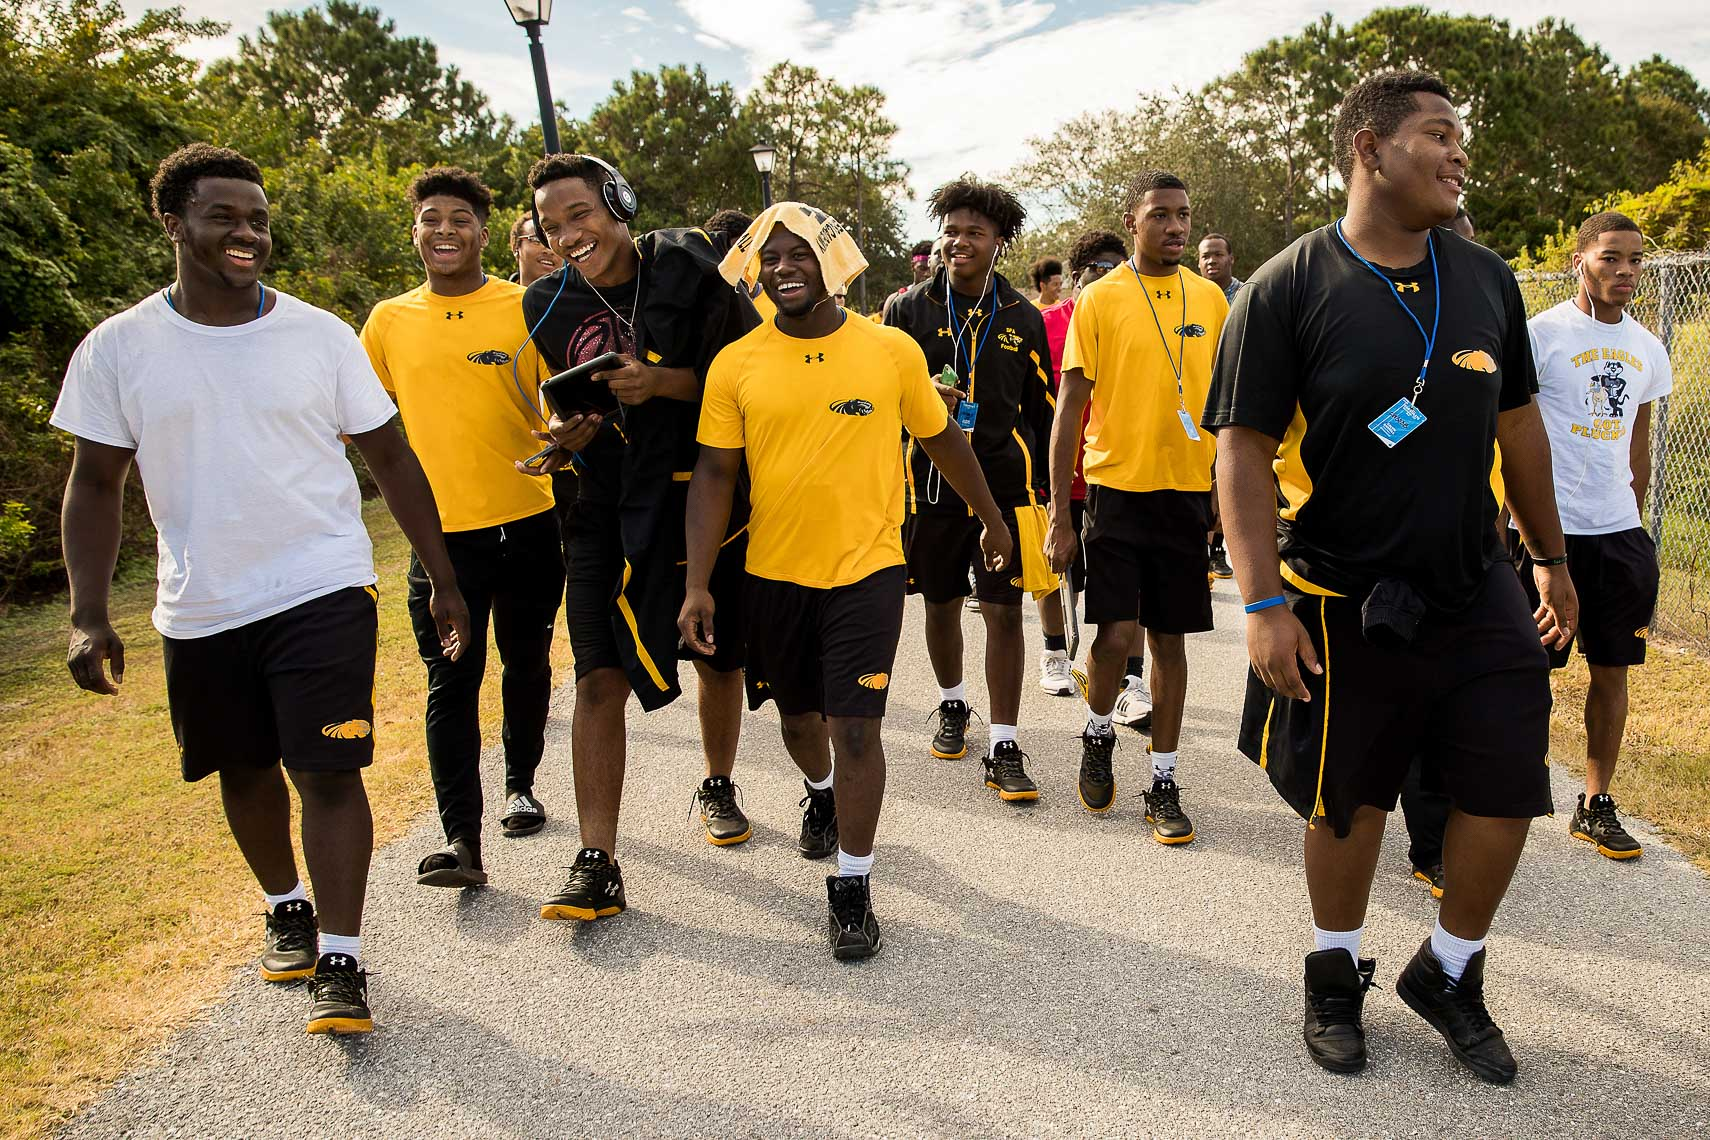 stfrances25_  poverty ESPN documentary MIAA Champions youth football team coach Biff Poggi versus IMG Academy football bradenton florida